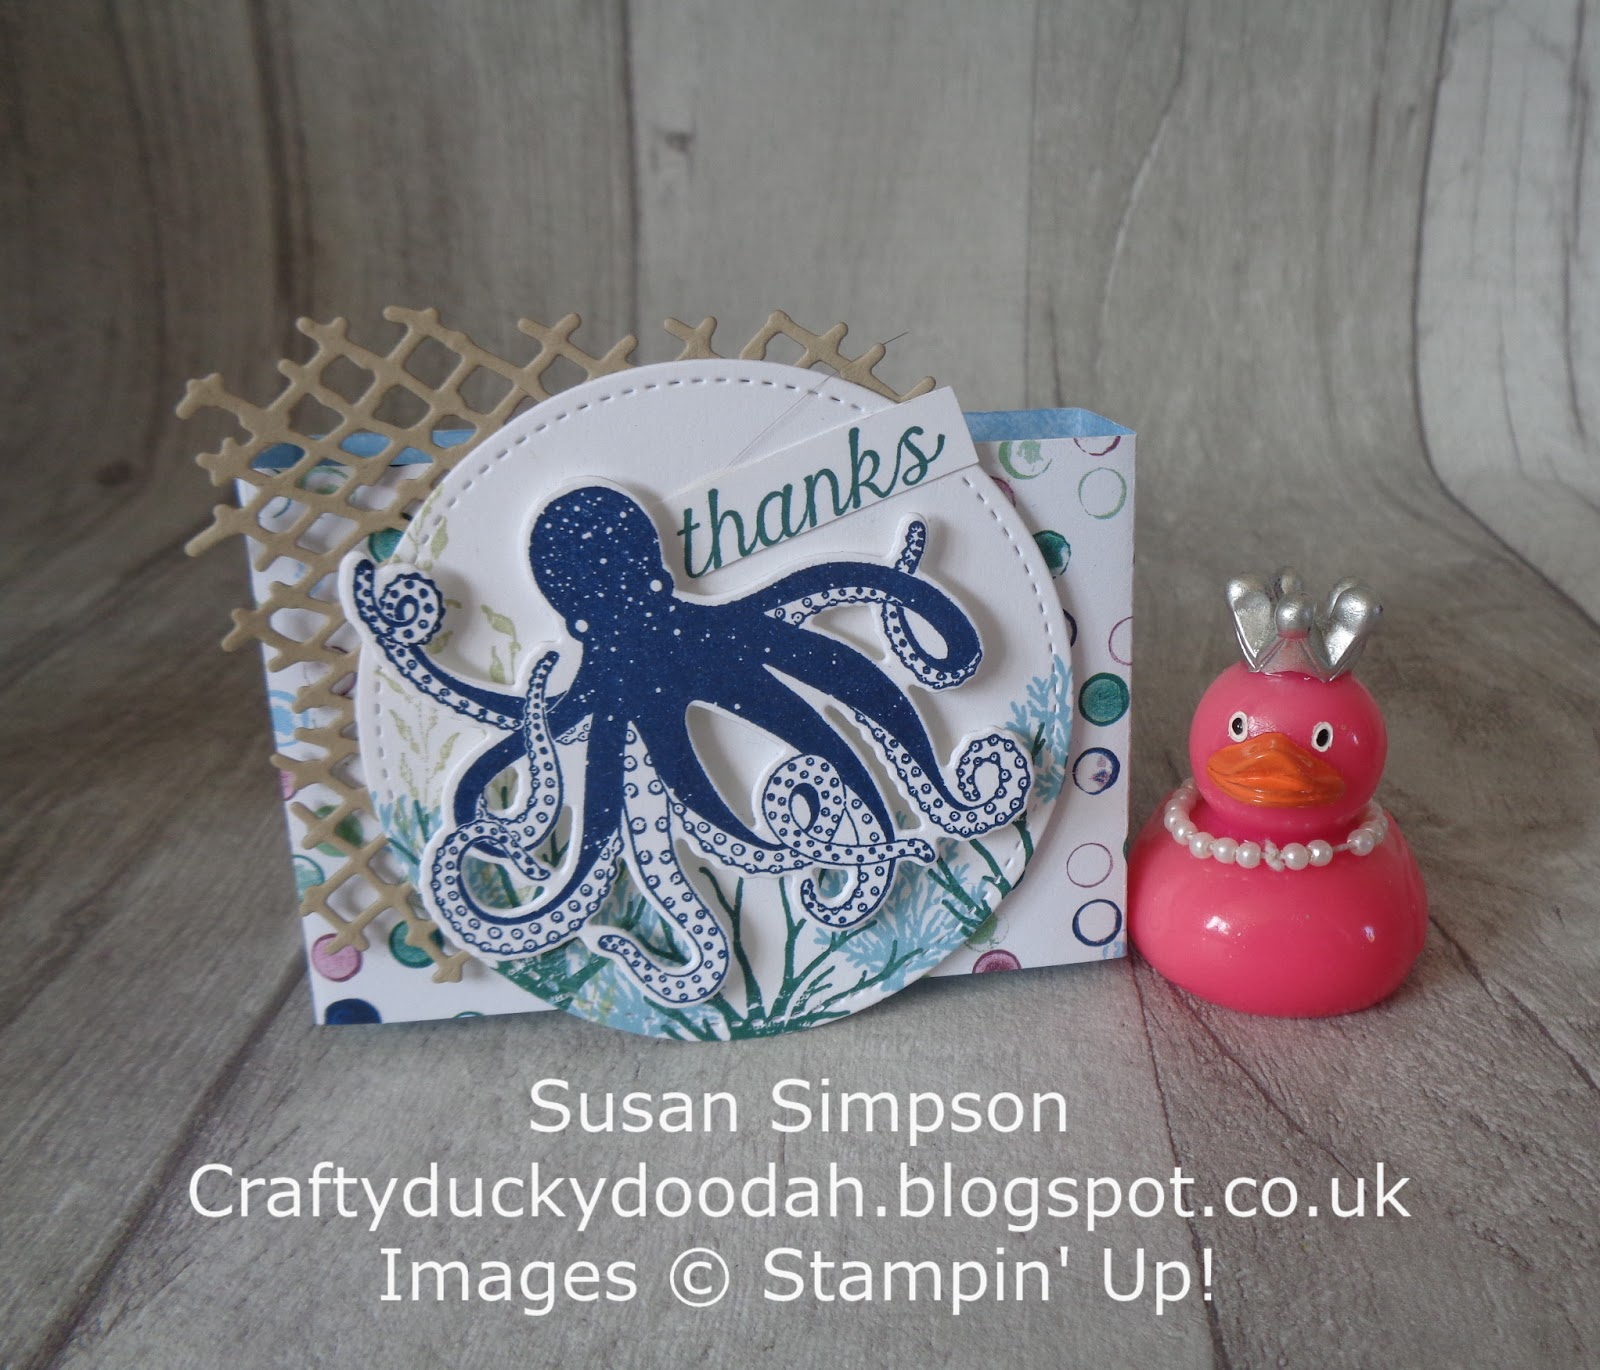 My Favourite Stitched Shape Framelits Provided A Base For Eight Legged Friend To Sit On Can You See The Crumb Cake Net Left Of Image